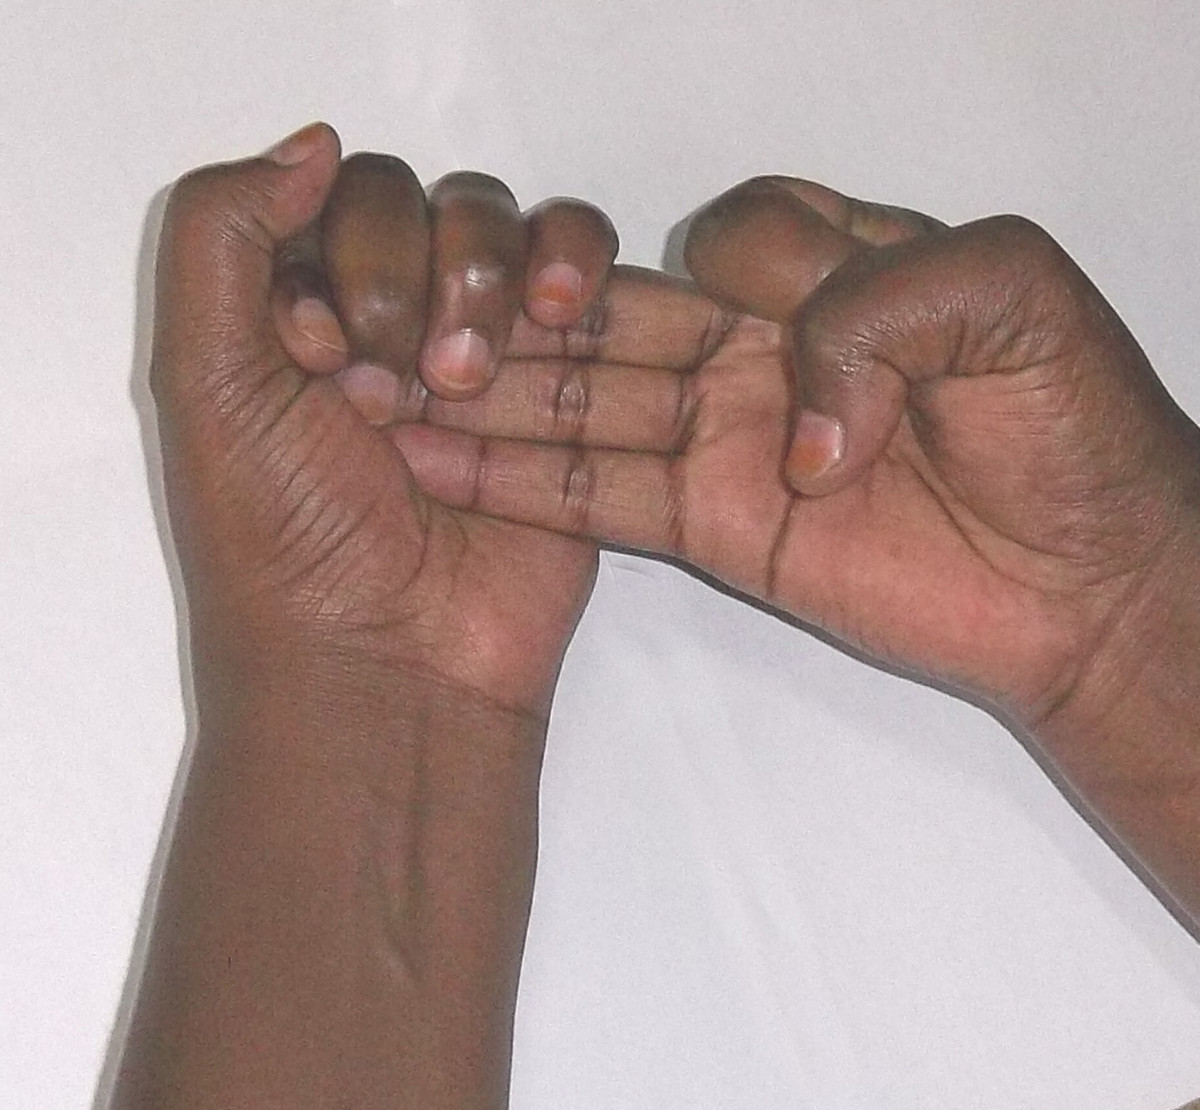 Kikuyu sign language for 8